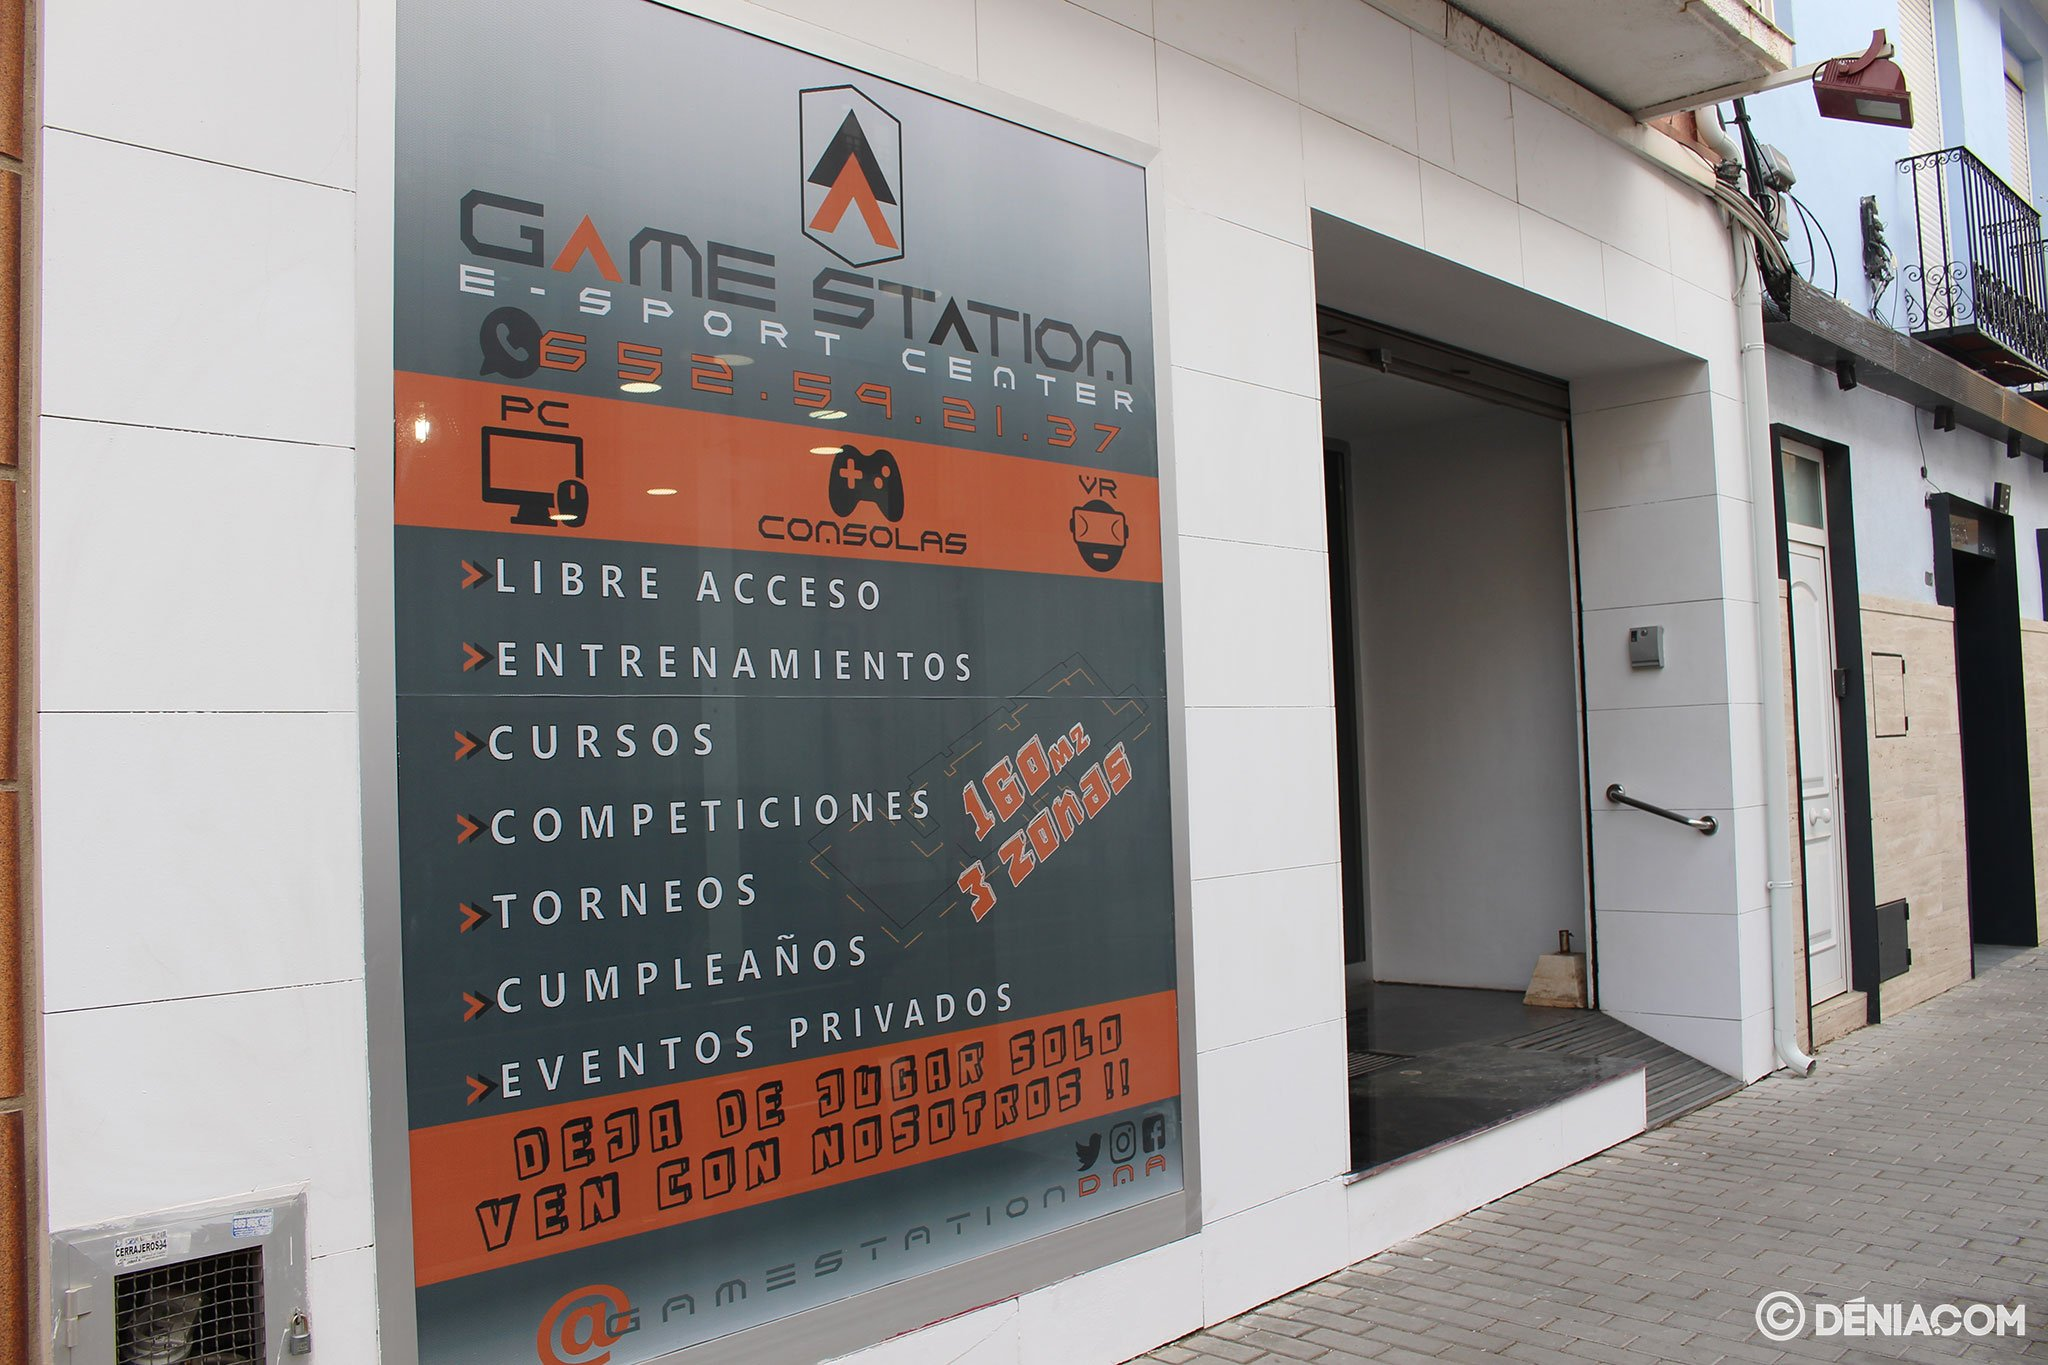 Game Station entrance